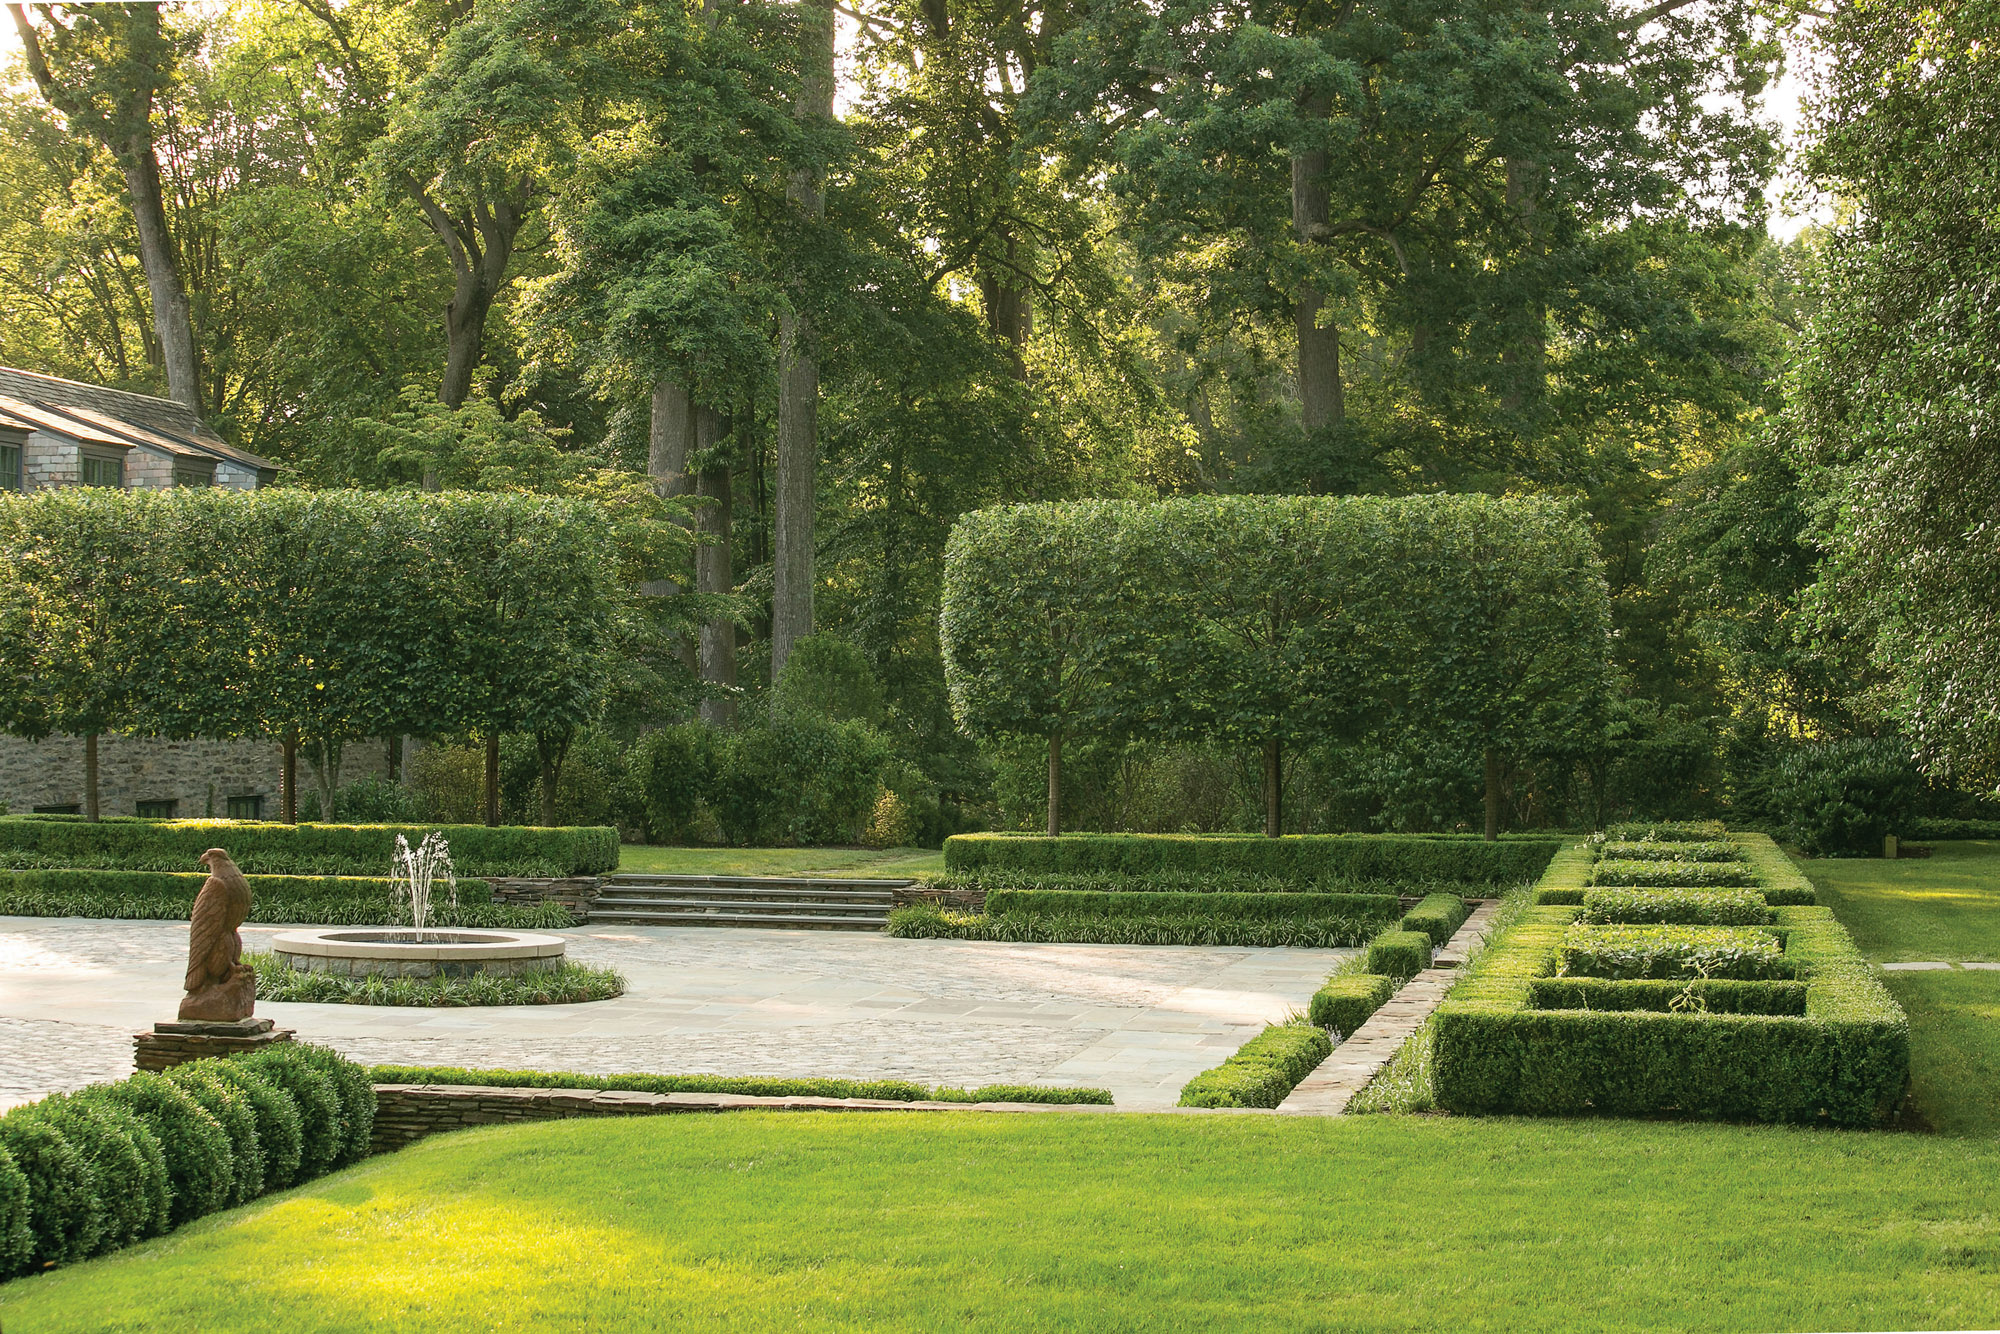 Parterres of boxwood and hornbeam